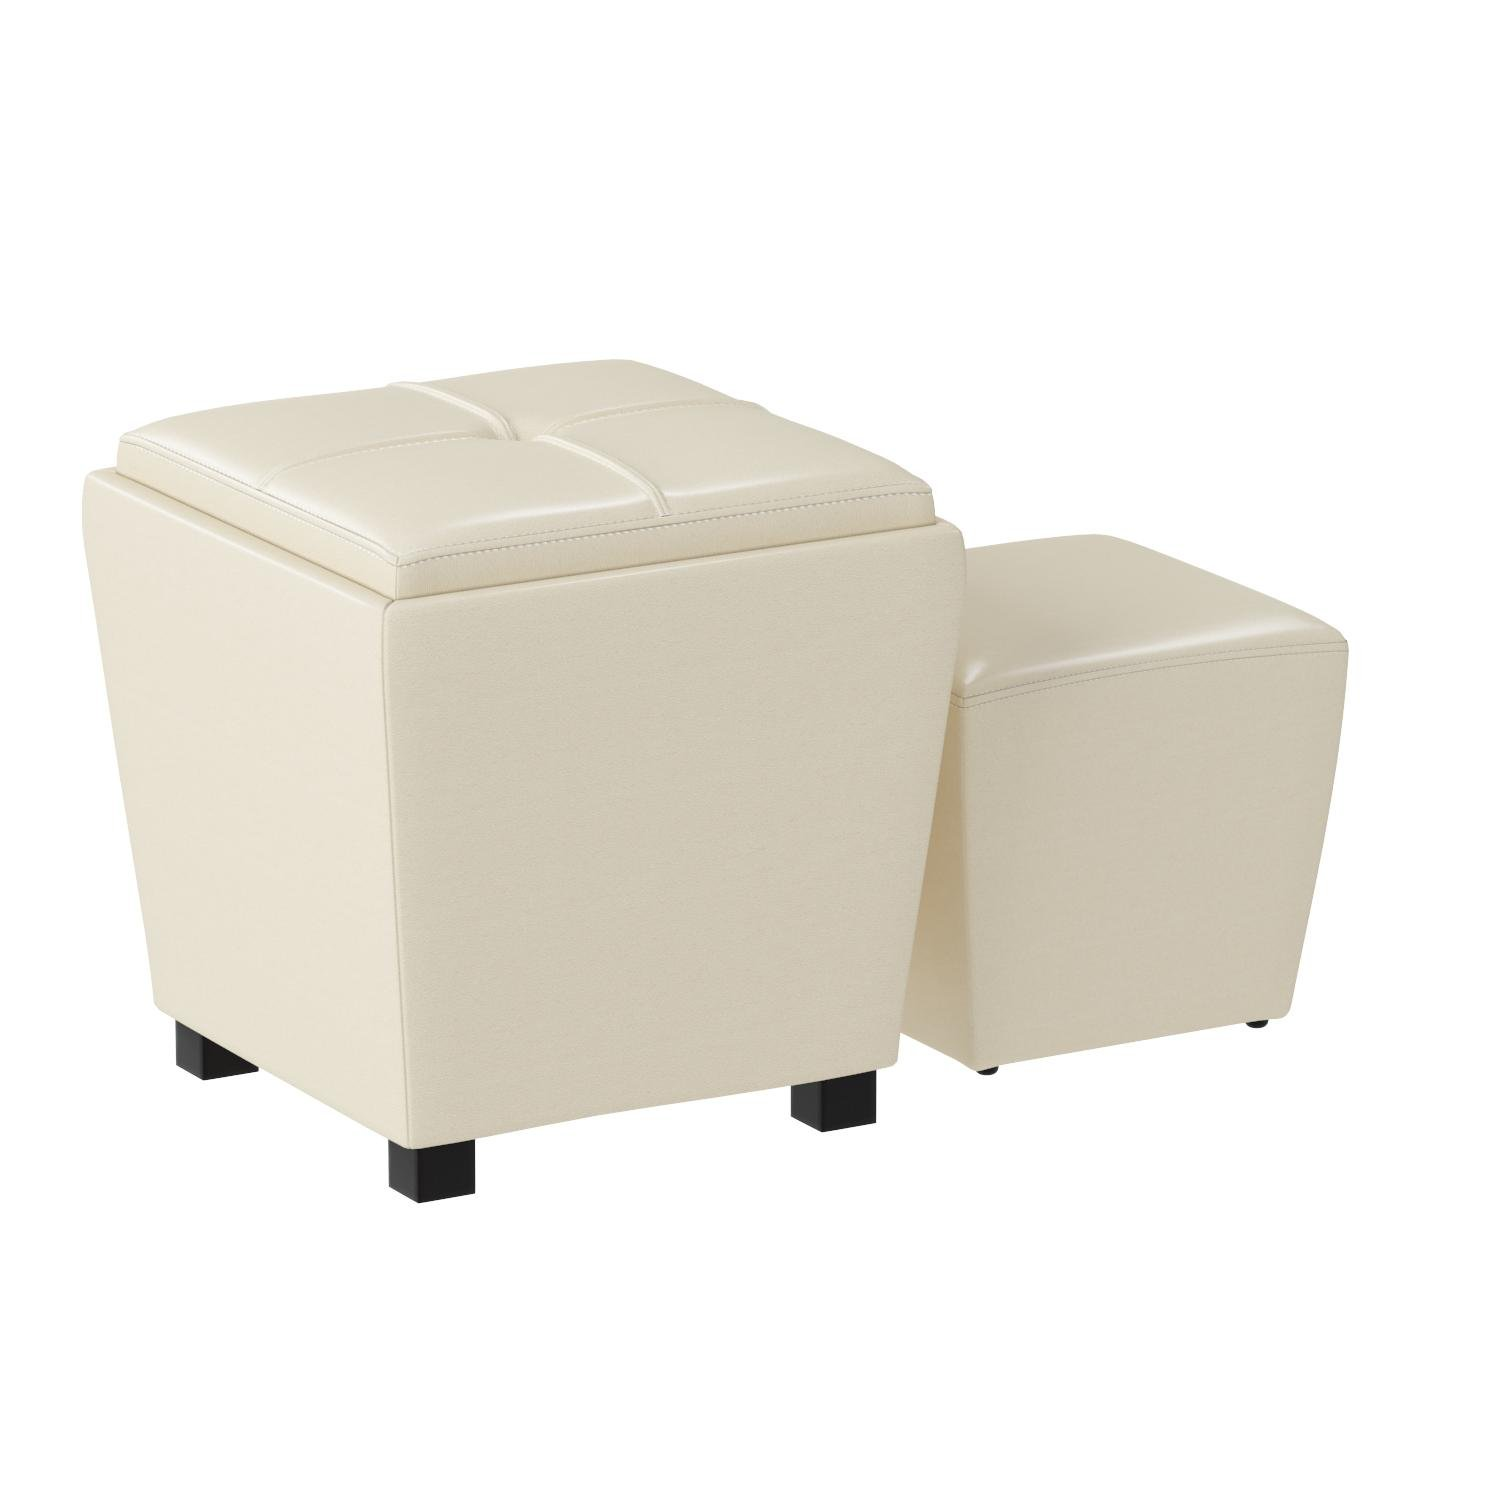 OSP Designs Office Star Metro 2-Piece Storage Ottoman Cube Set in Eco Leather, Cream by OSP Designs (Image #2)